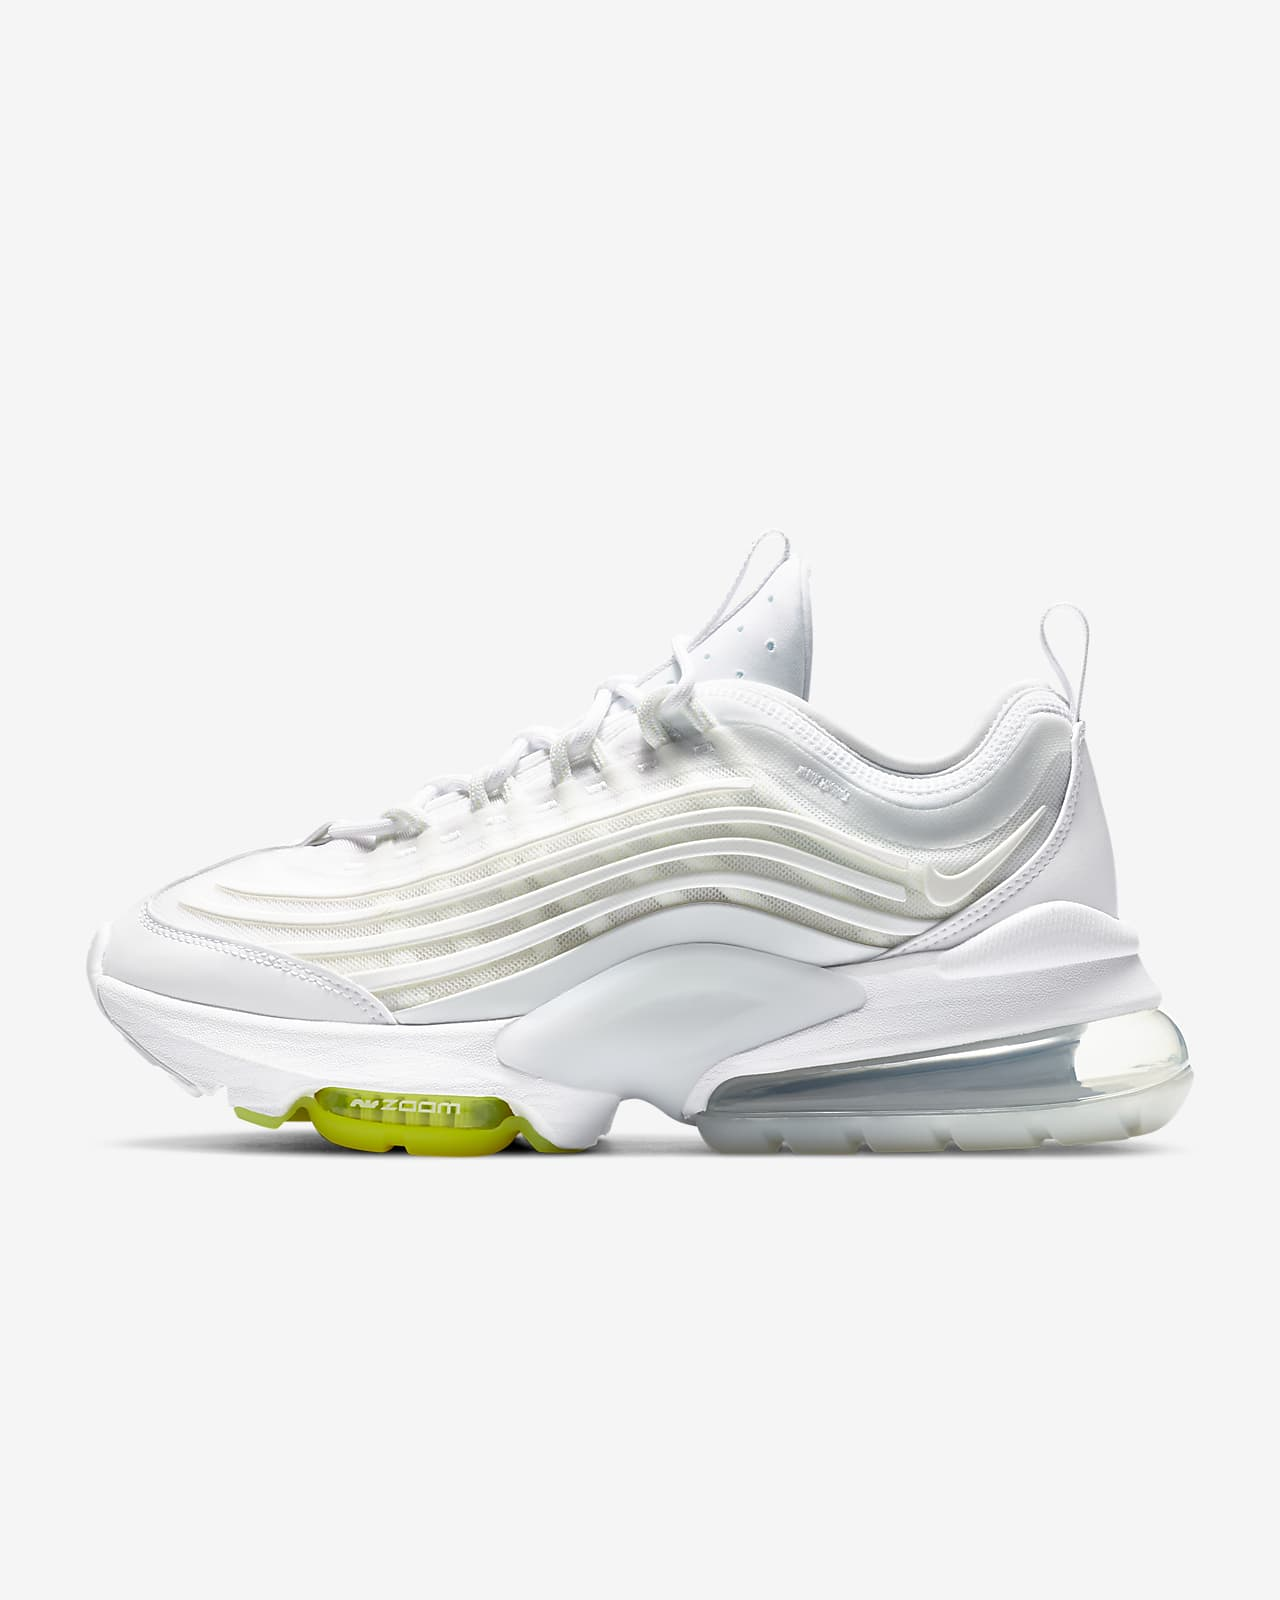 Nike Air Max ZM950 Women's Shoe